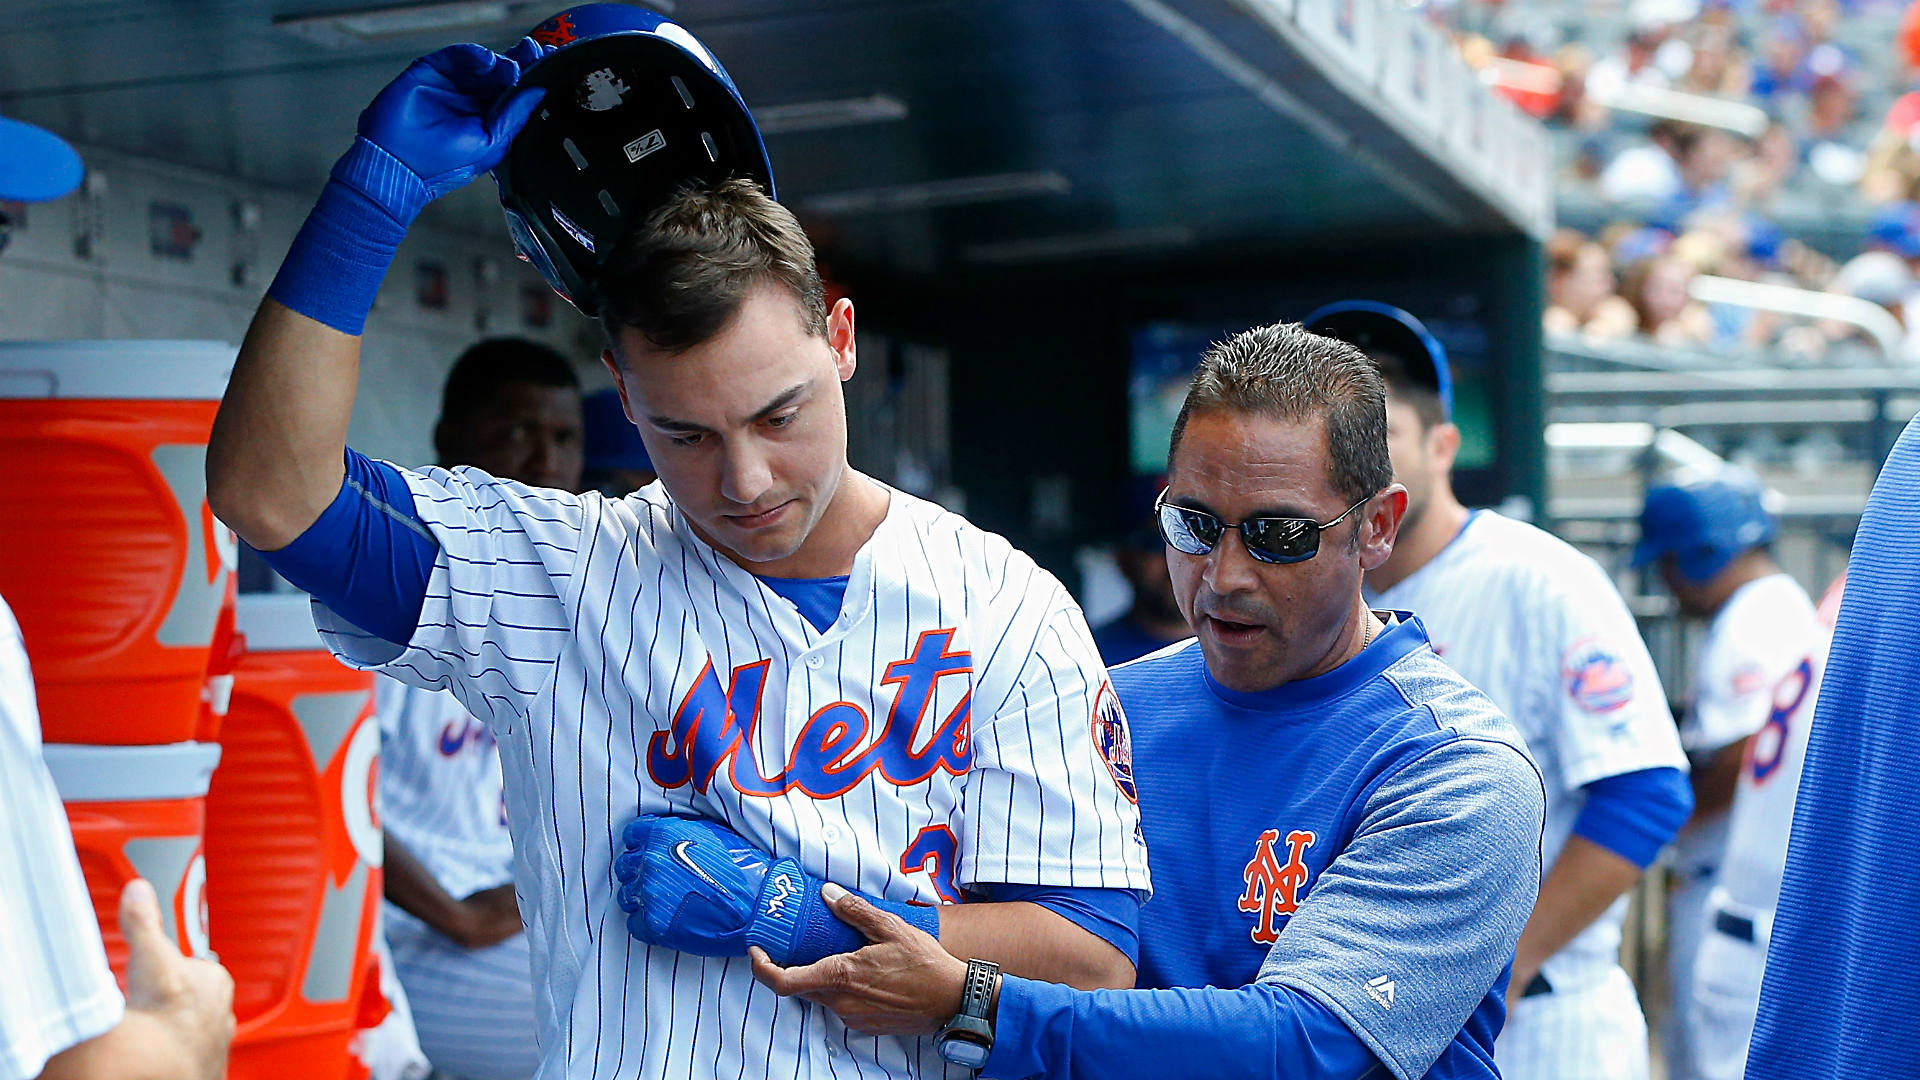 Mets OF Conforto has tear in shoulder, injured taking swing